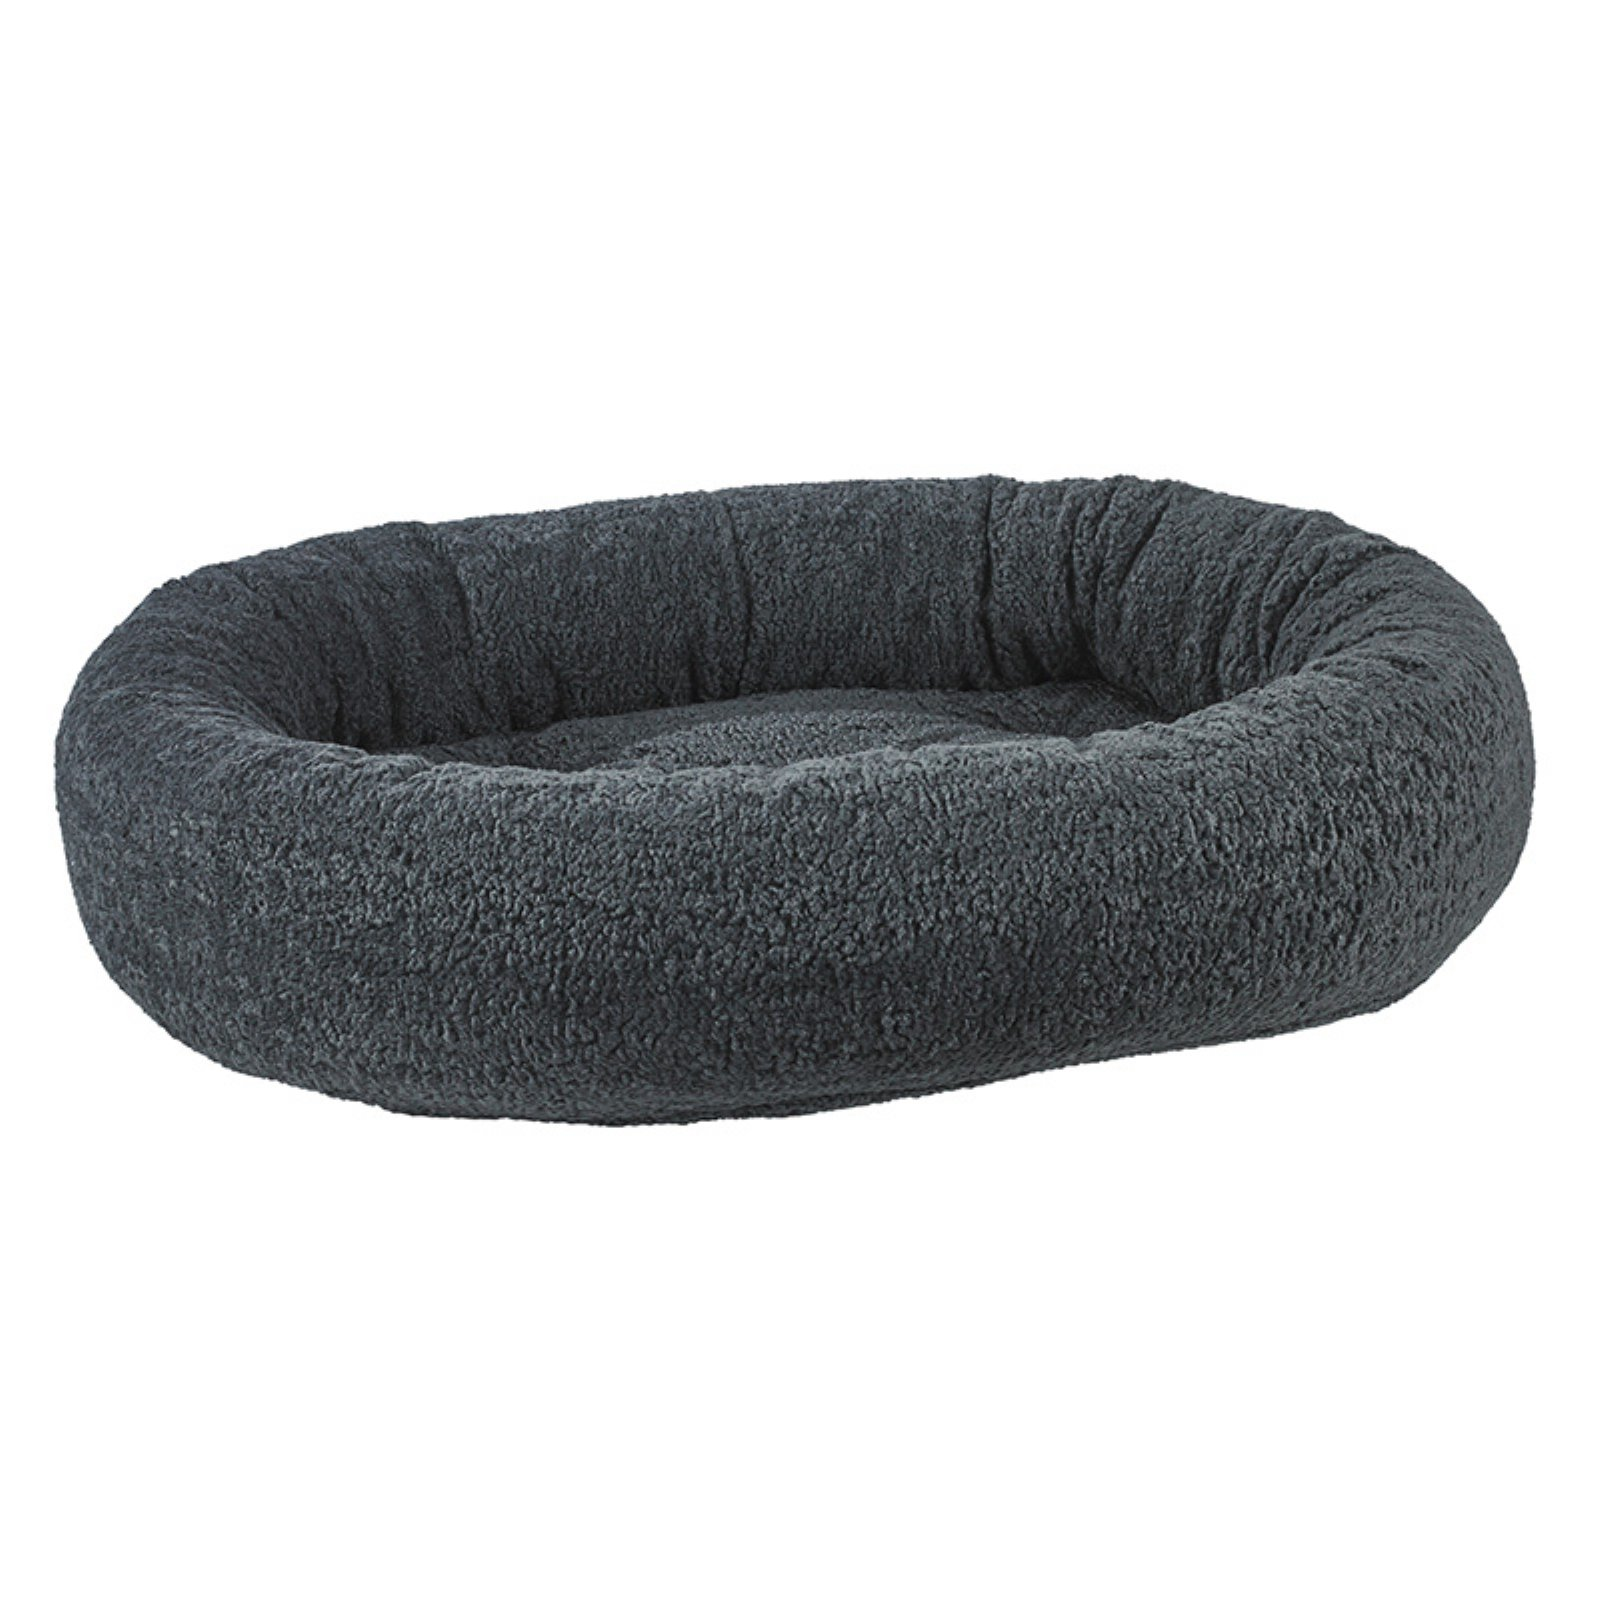 Picture of: Bowsers Donut Pet Bed Walmart Com Walmart Com